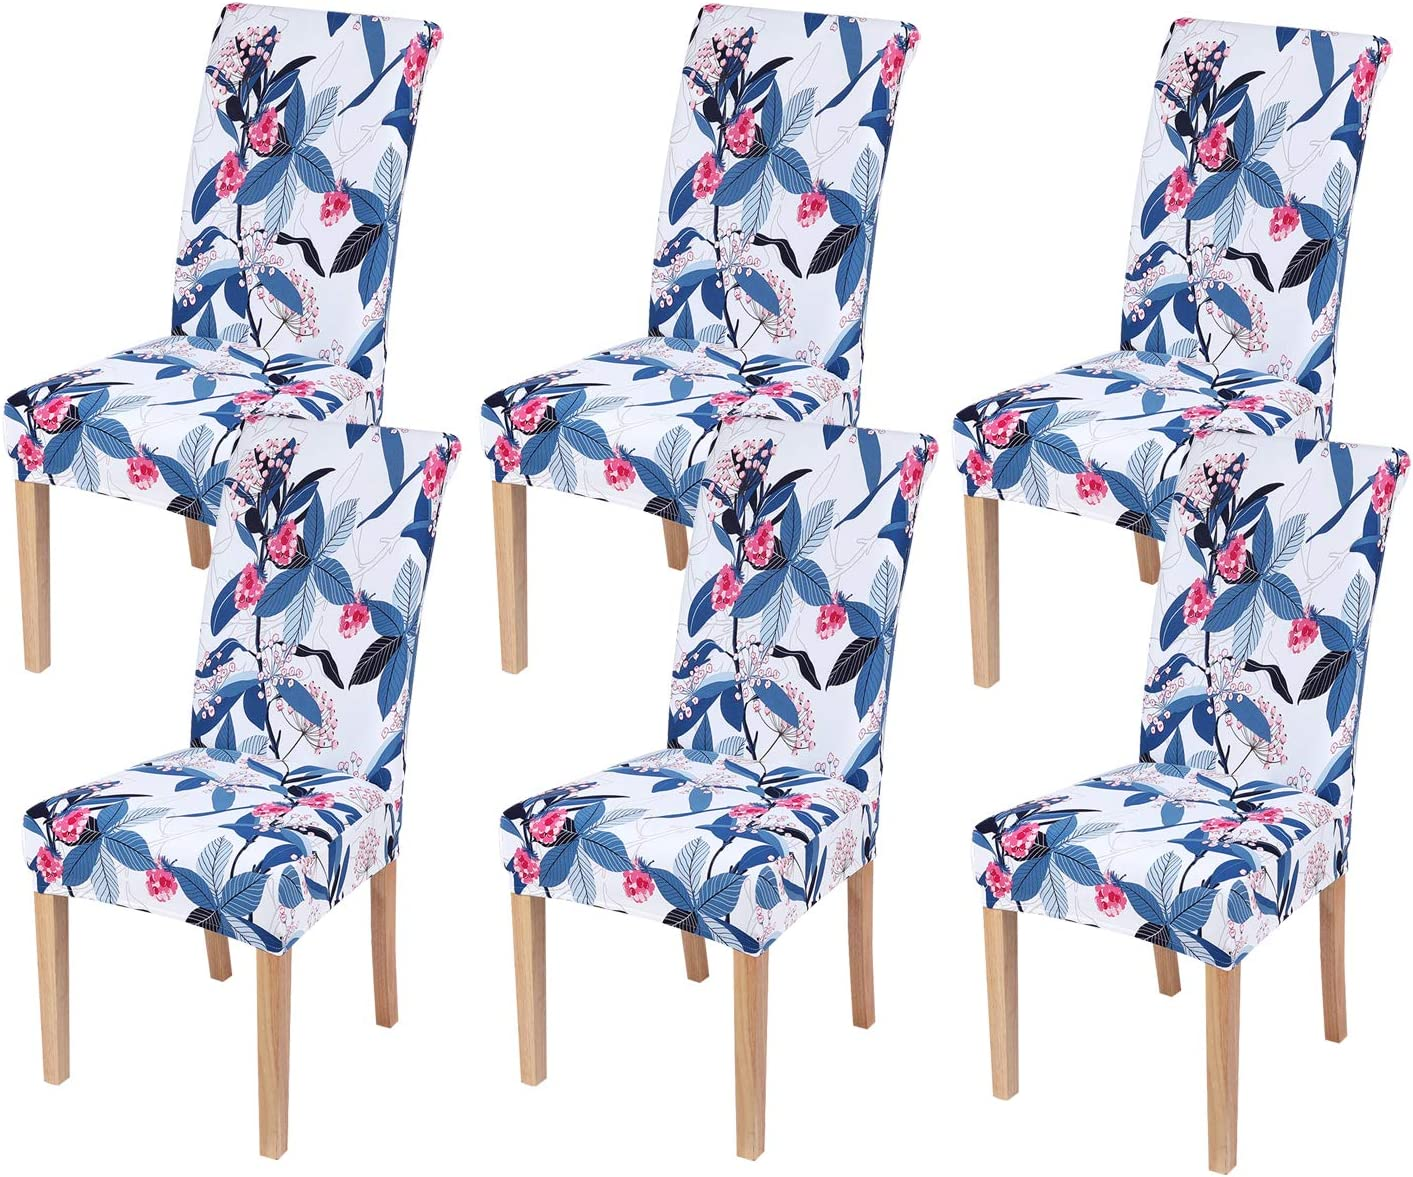 smiry 6 Pack Printed Dining Chair Covers, Stretch Spandex Removable Washable Dining Chair Protector Slipcovers for Home, Kitchen, Party, Restaurant (Blue with White)